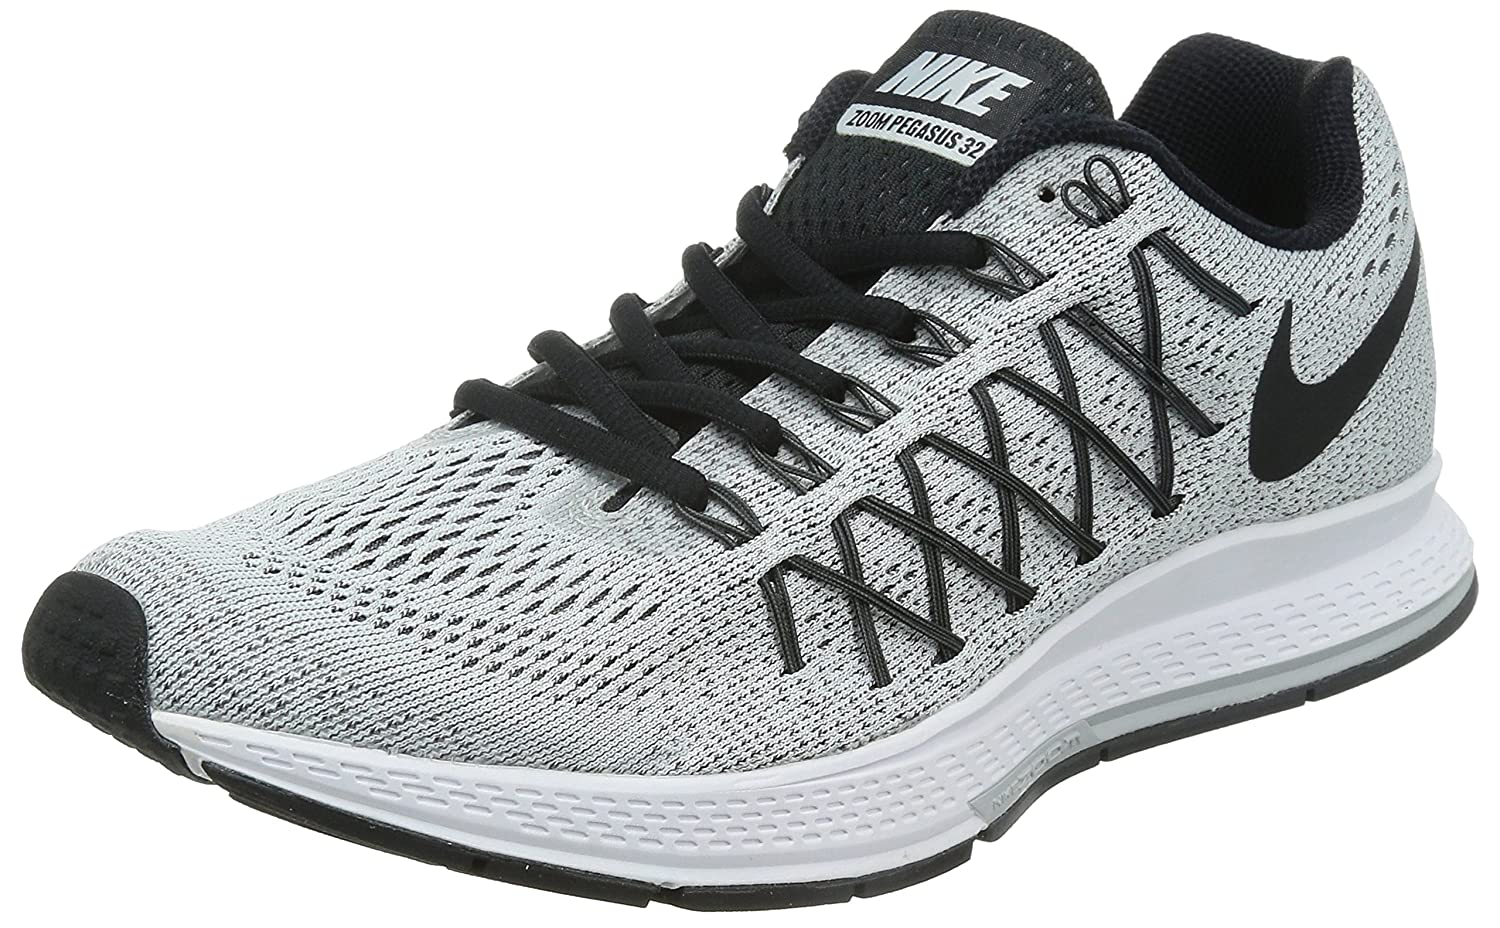 new style 0324a 7b061 Nike Air Zoom Pegasus 32, Men s Multisport Outdoor Shoes, Grey (Grey), 7.5  UK  Amazon.co.uk  Shoes   Bags